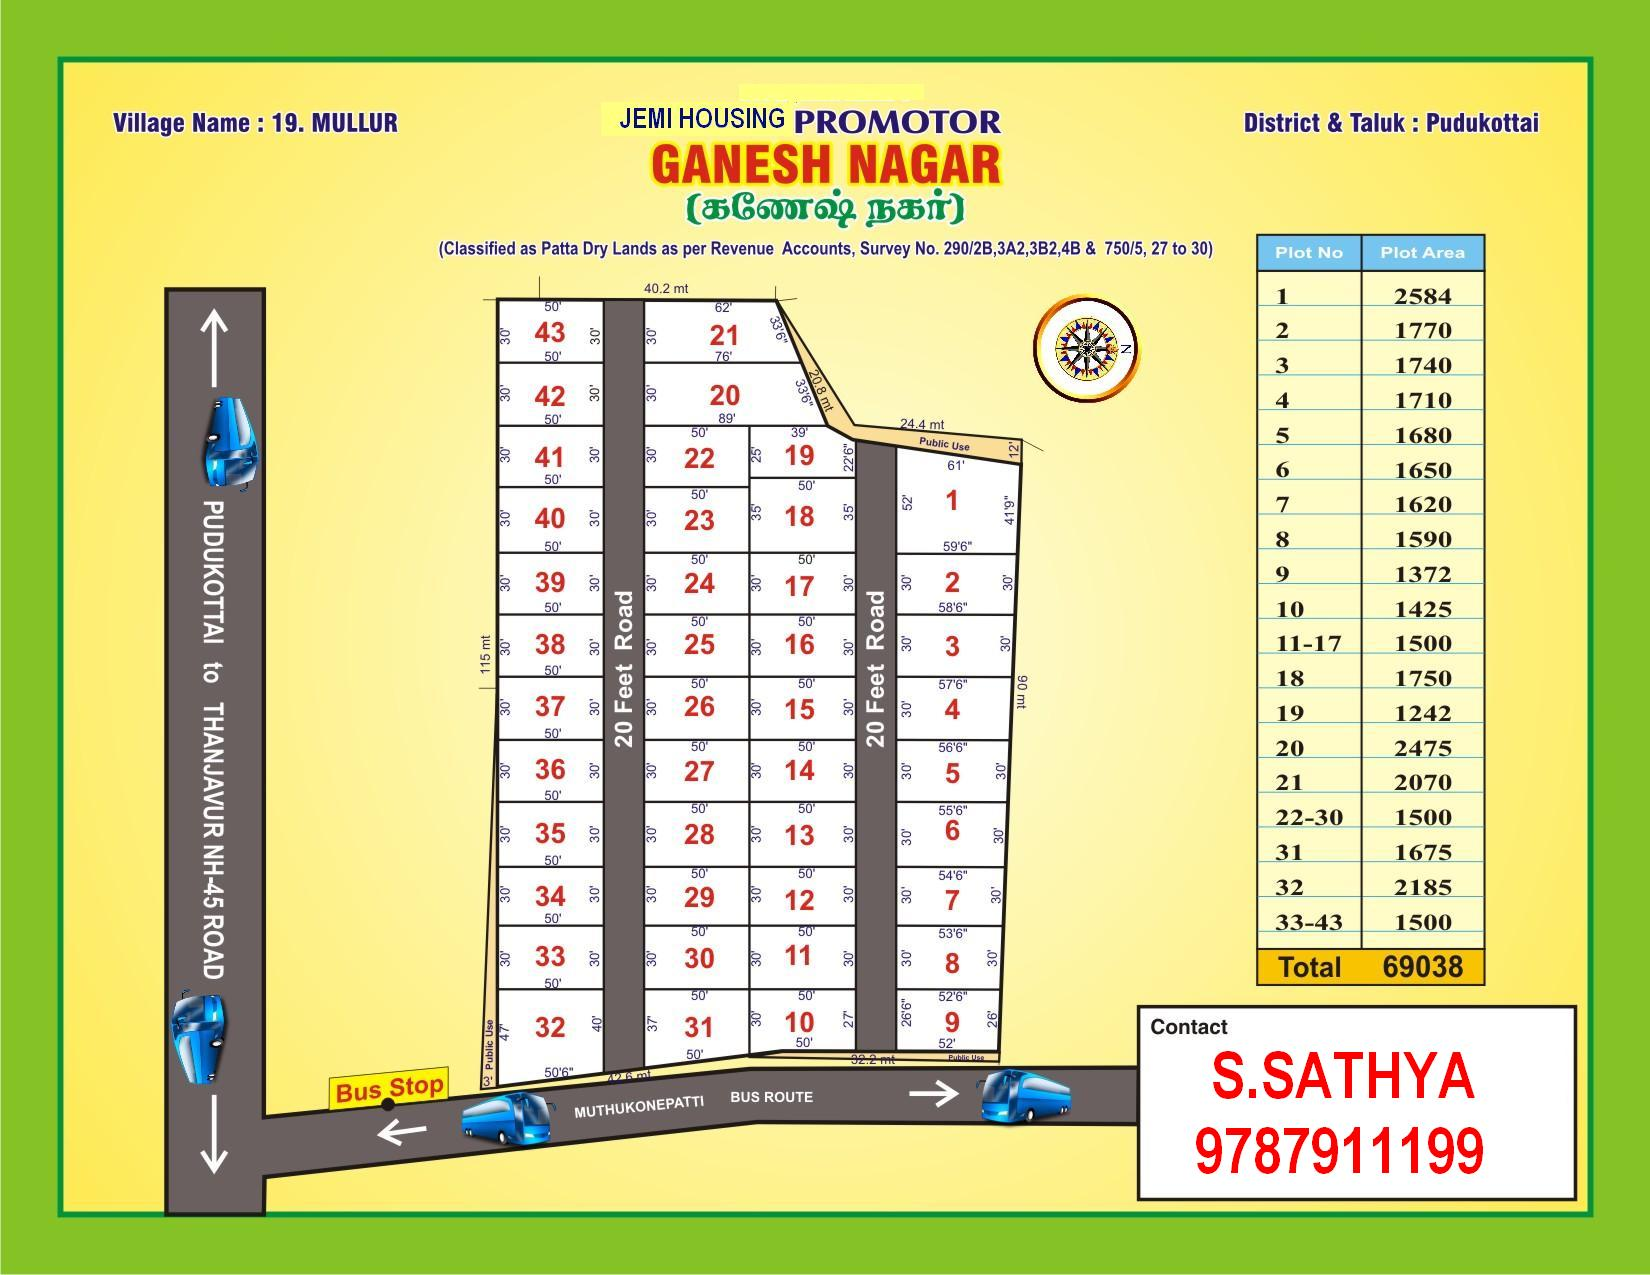 Residential plot for sale in Ganesh Nagar on pudukkottai (MUllUR)